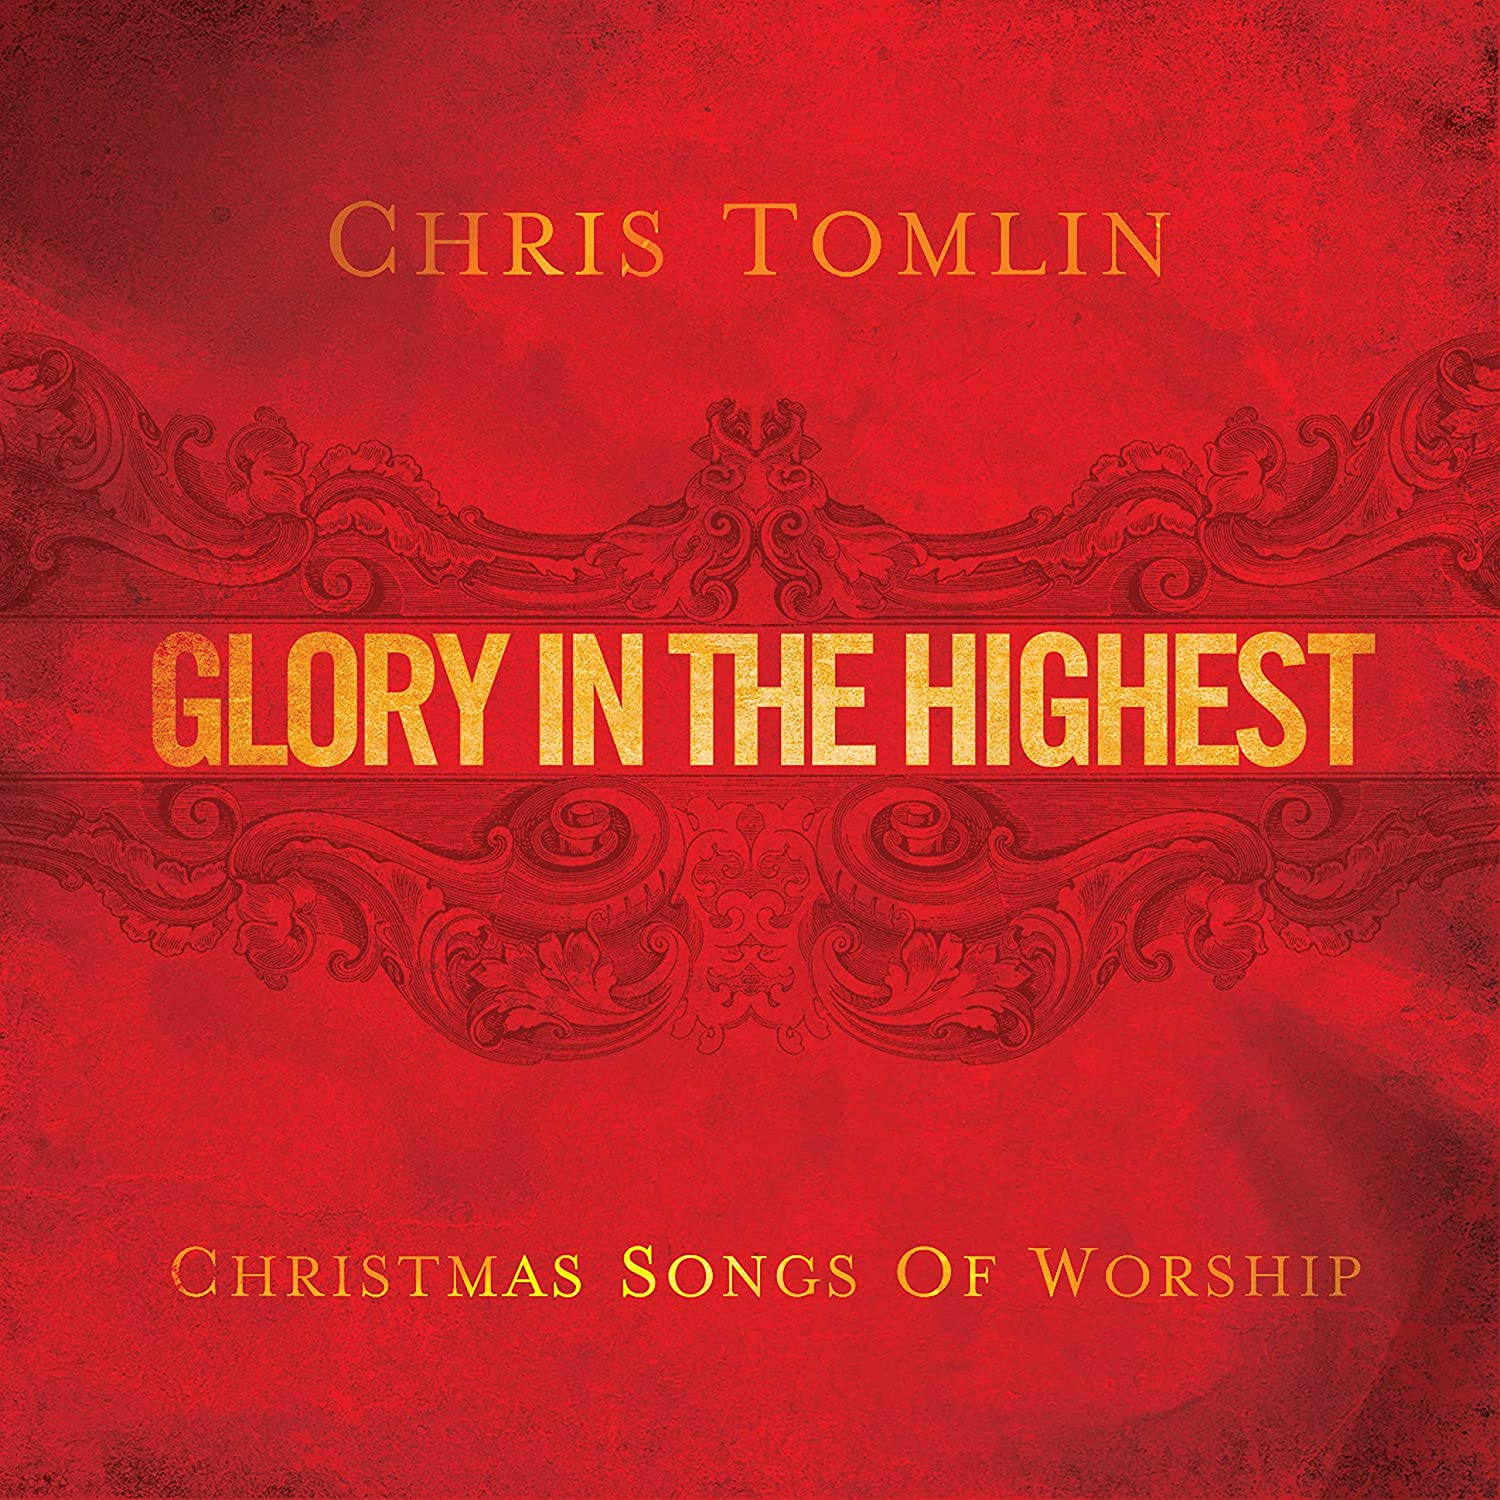 Chris Tomlin Christmas.Glory In The Highest Christmas Songs Of Worship